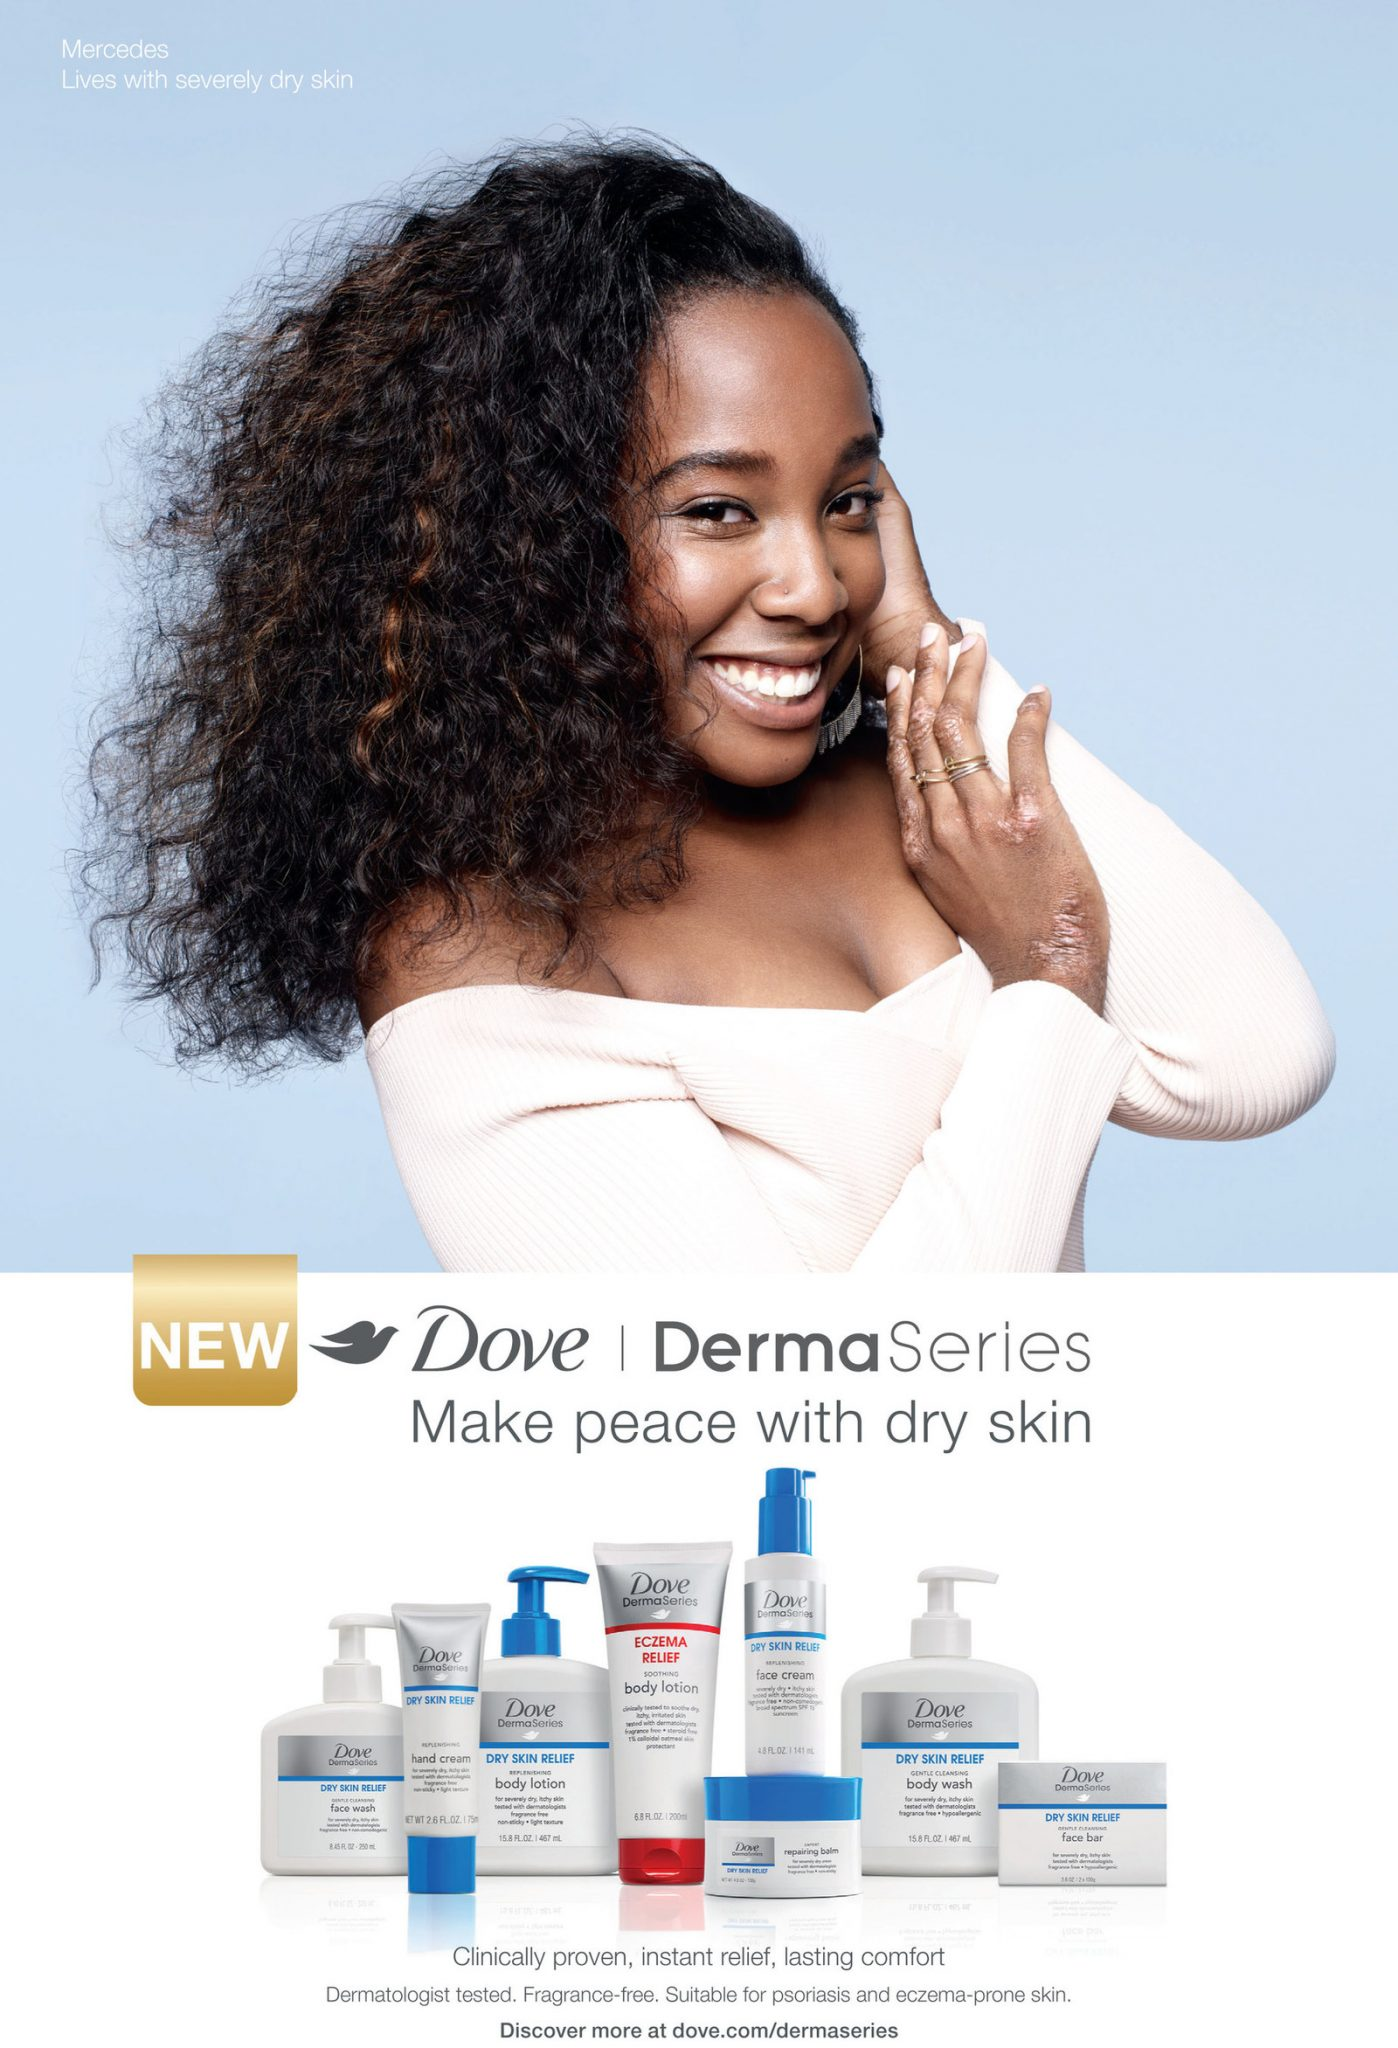 Dove Launches DermaSeries Product Collection for Dry Skin Sufferers